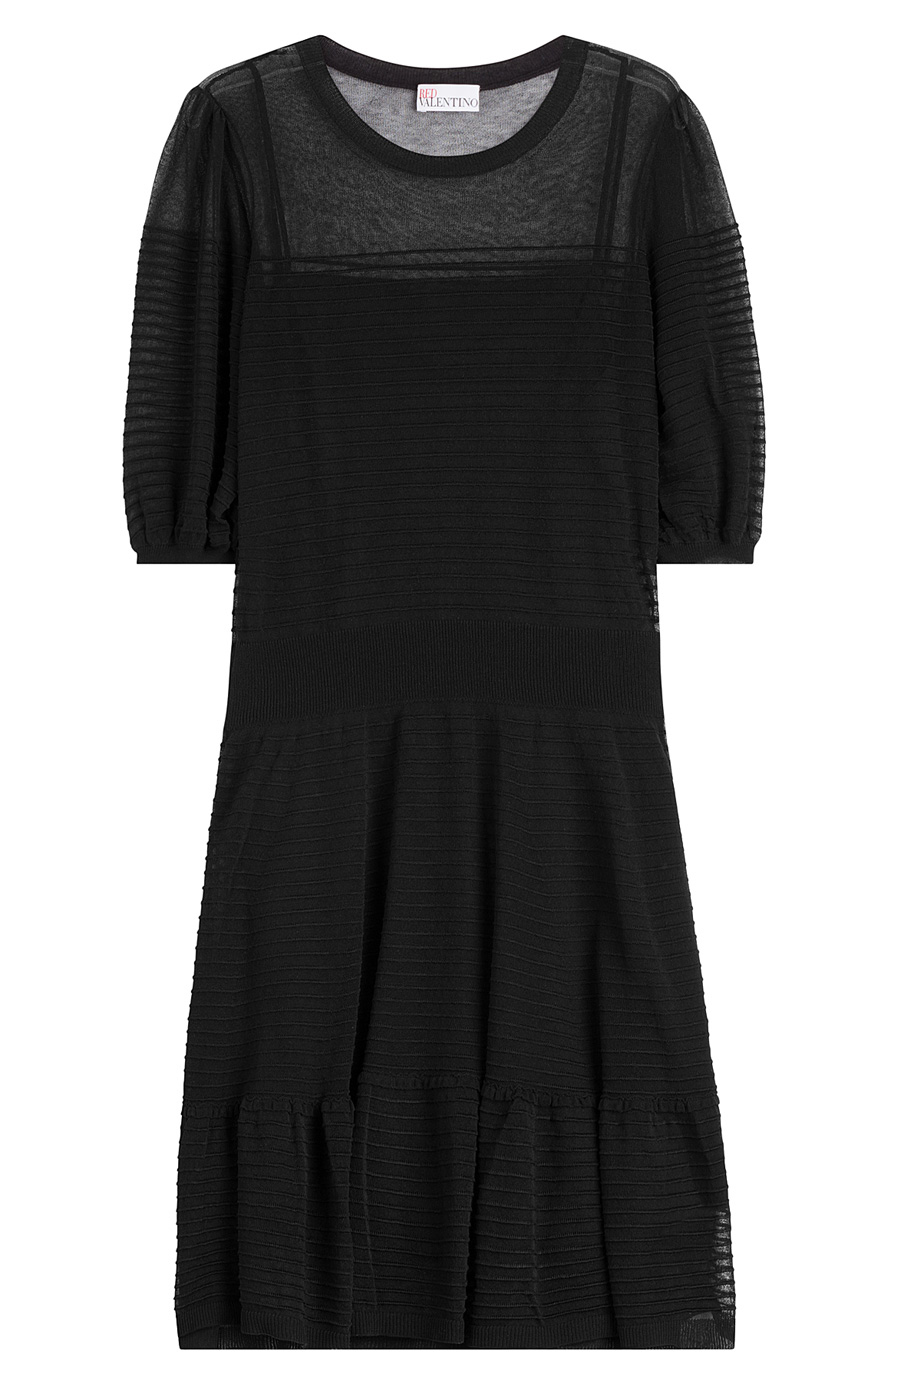 Red Valentino Knit Cotton Dress In Black